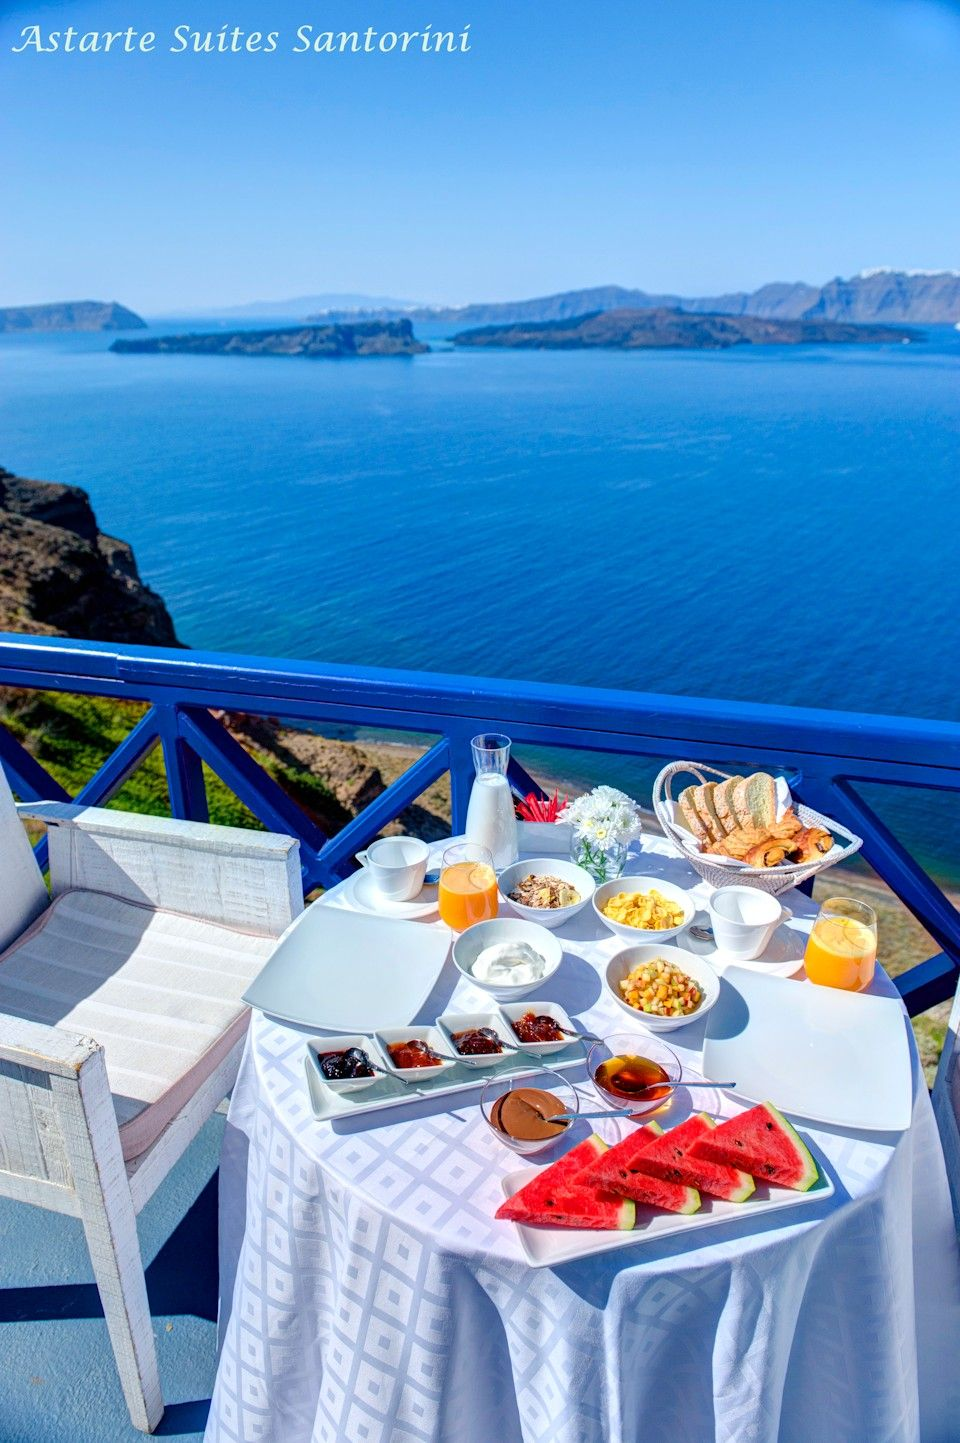 Breakfast served at guests private terrace overlooking sea-volcano-caldera views | Astarte Suites Hotel | Santorini island